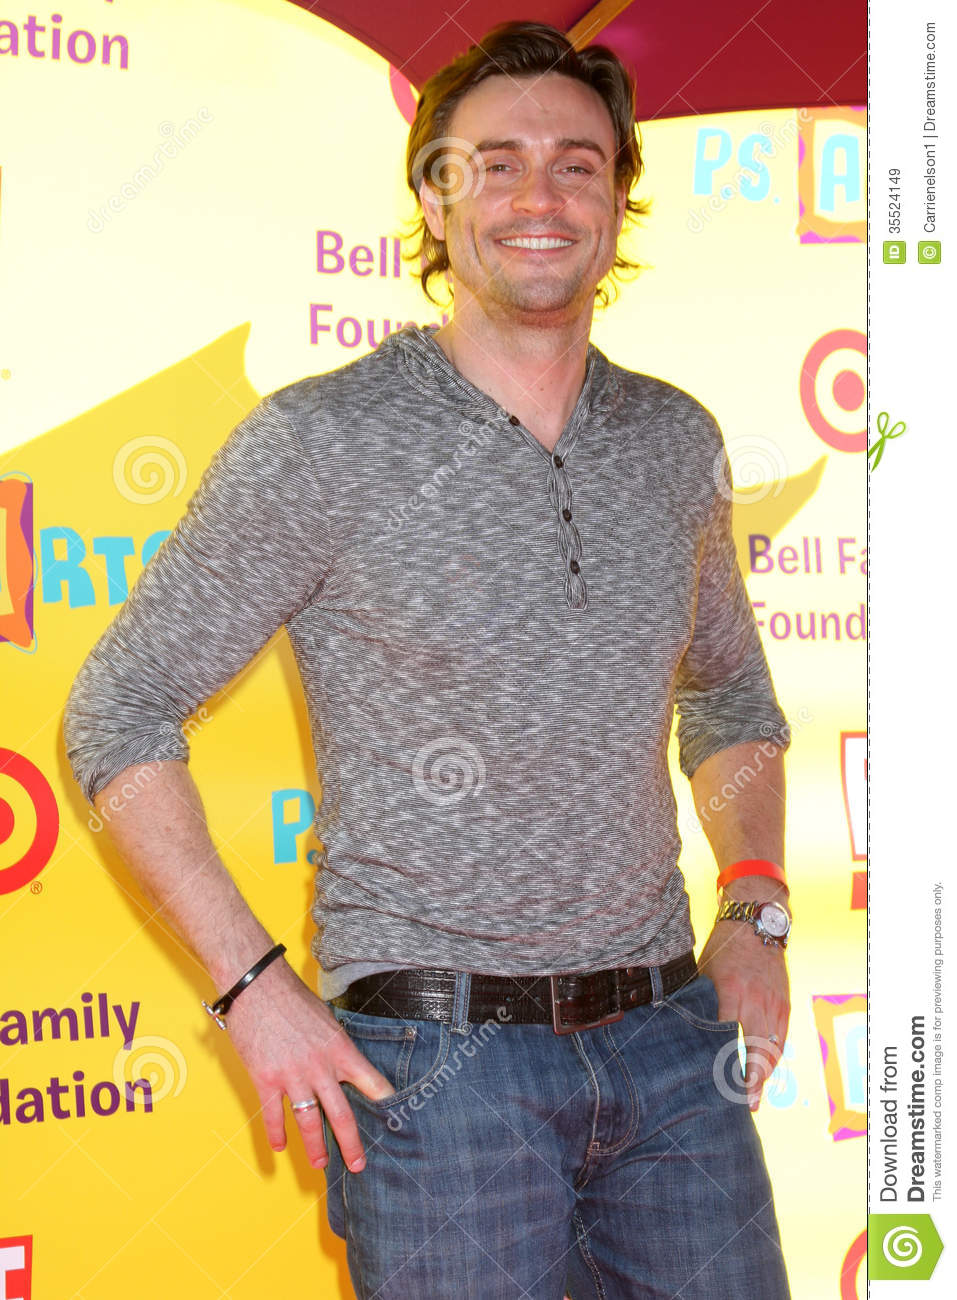 daniel goddard facebookdaniel goddard instagram, daniel goddard, daniel goddard beastmaster, daniel goddard biography, daniel goddard wife, daniel goddard twitter, daniel goddard leaving y&r, daniel goddard facebook, daniel goddard md, daniel goddard injury, daniel goddard arm, daniel goddard rachel marcus, daniel goddard net worth, daniel goddard les feux de l'amour, daniel goddard broken arm, daniel goddard surgery, daniel goddard shirtless, daniel goddard married, daniel goddard broken elbow, daniel goddard accident